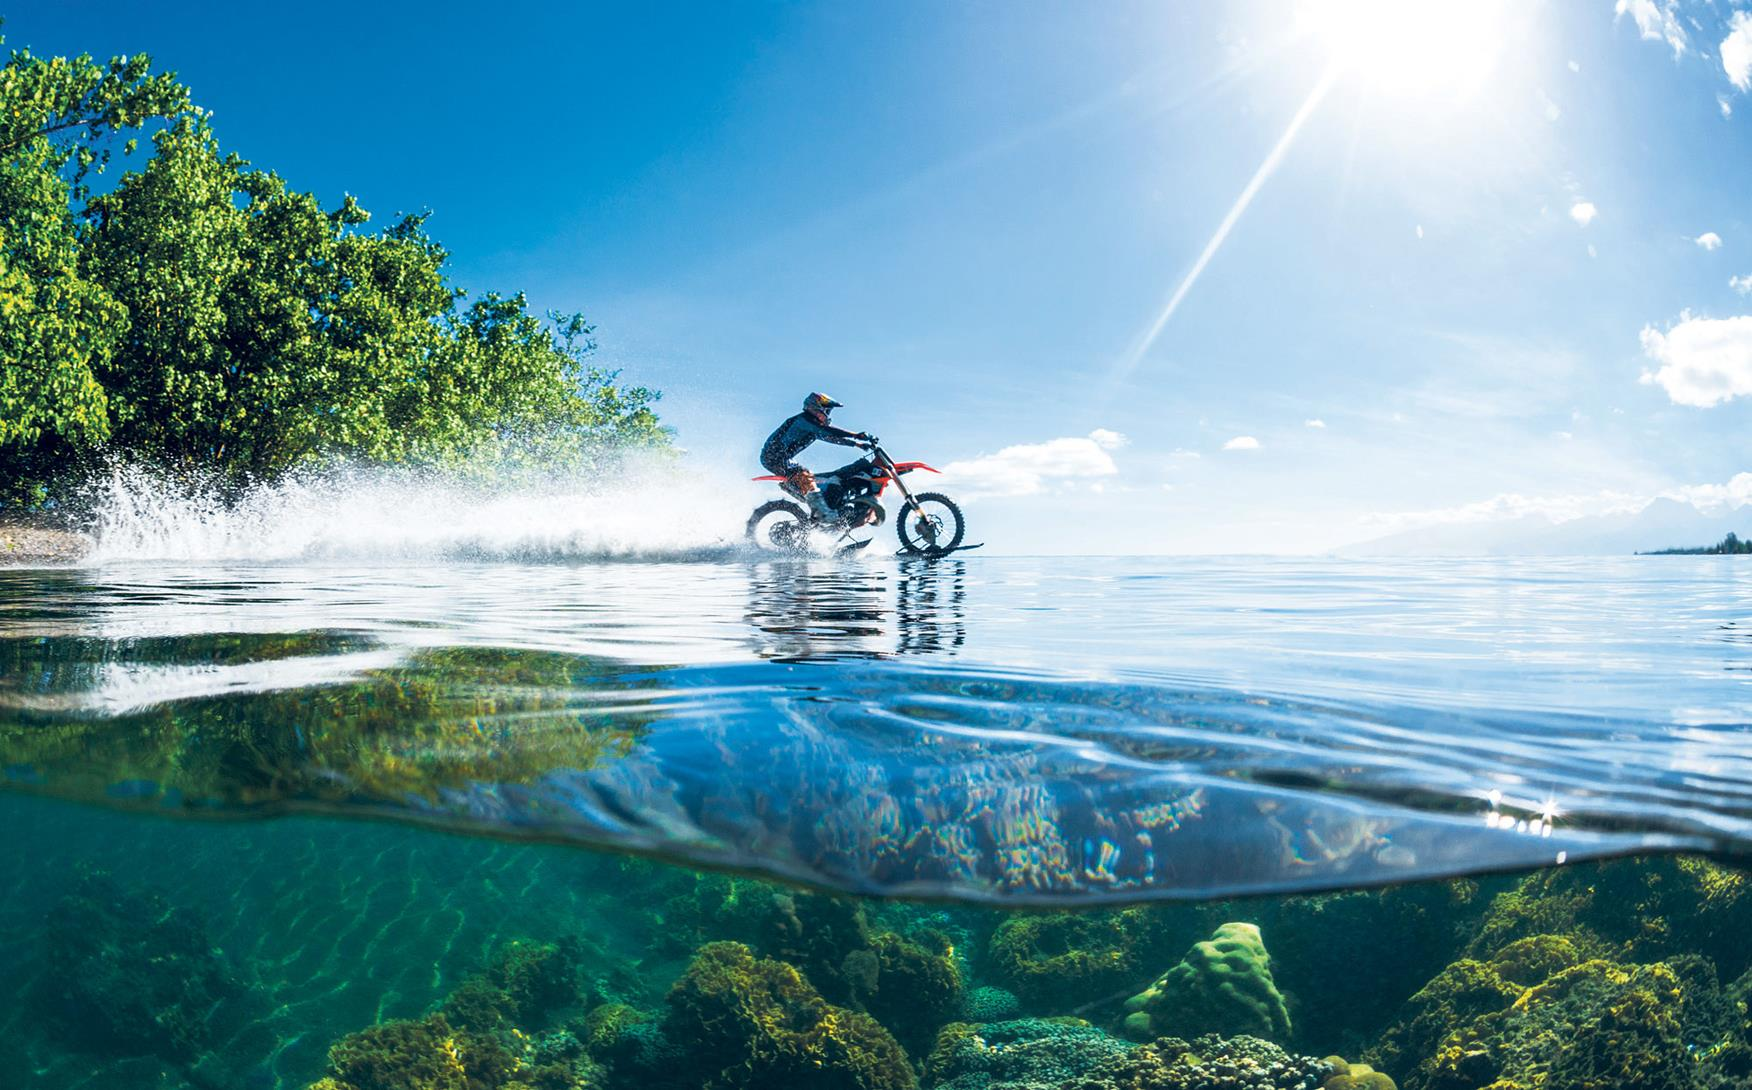 Robbie Maddison rides on water